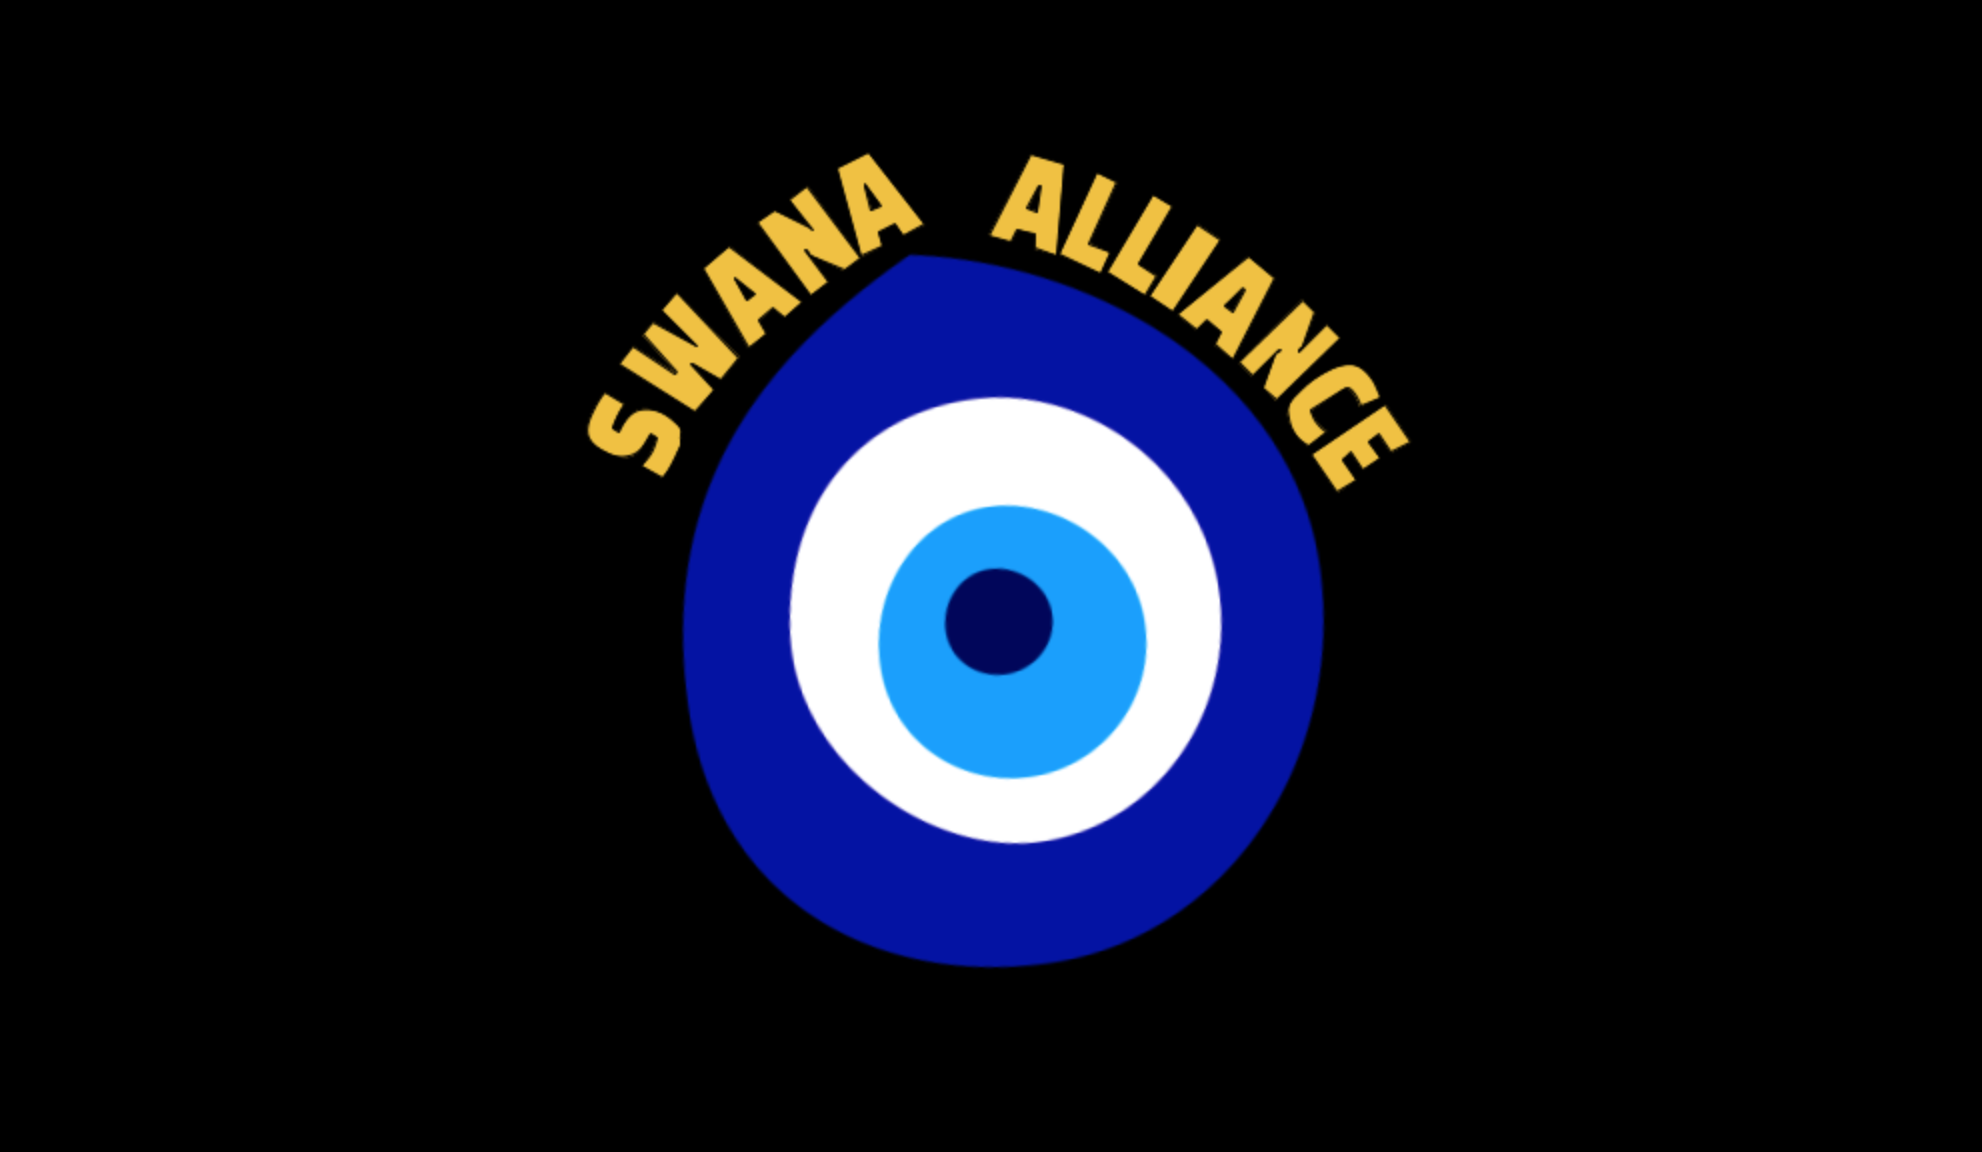 Swana Alliance